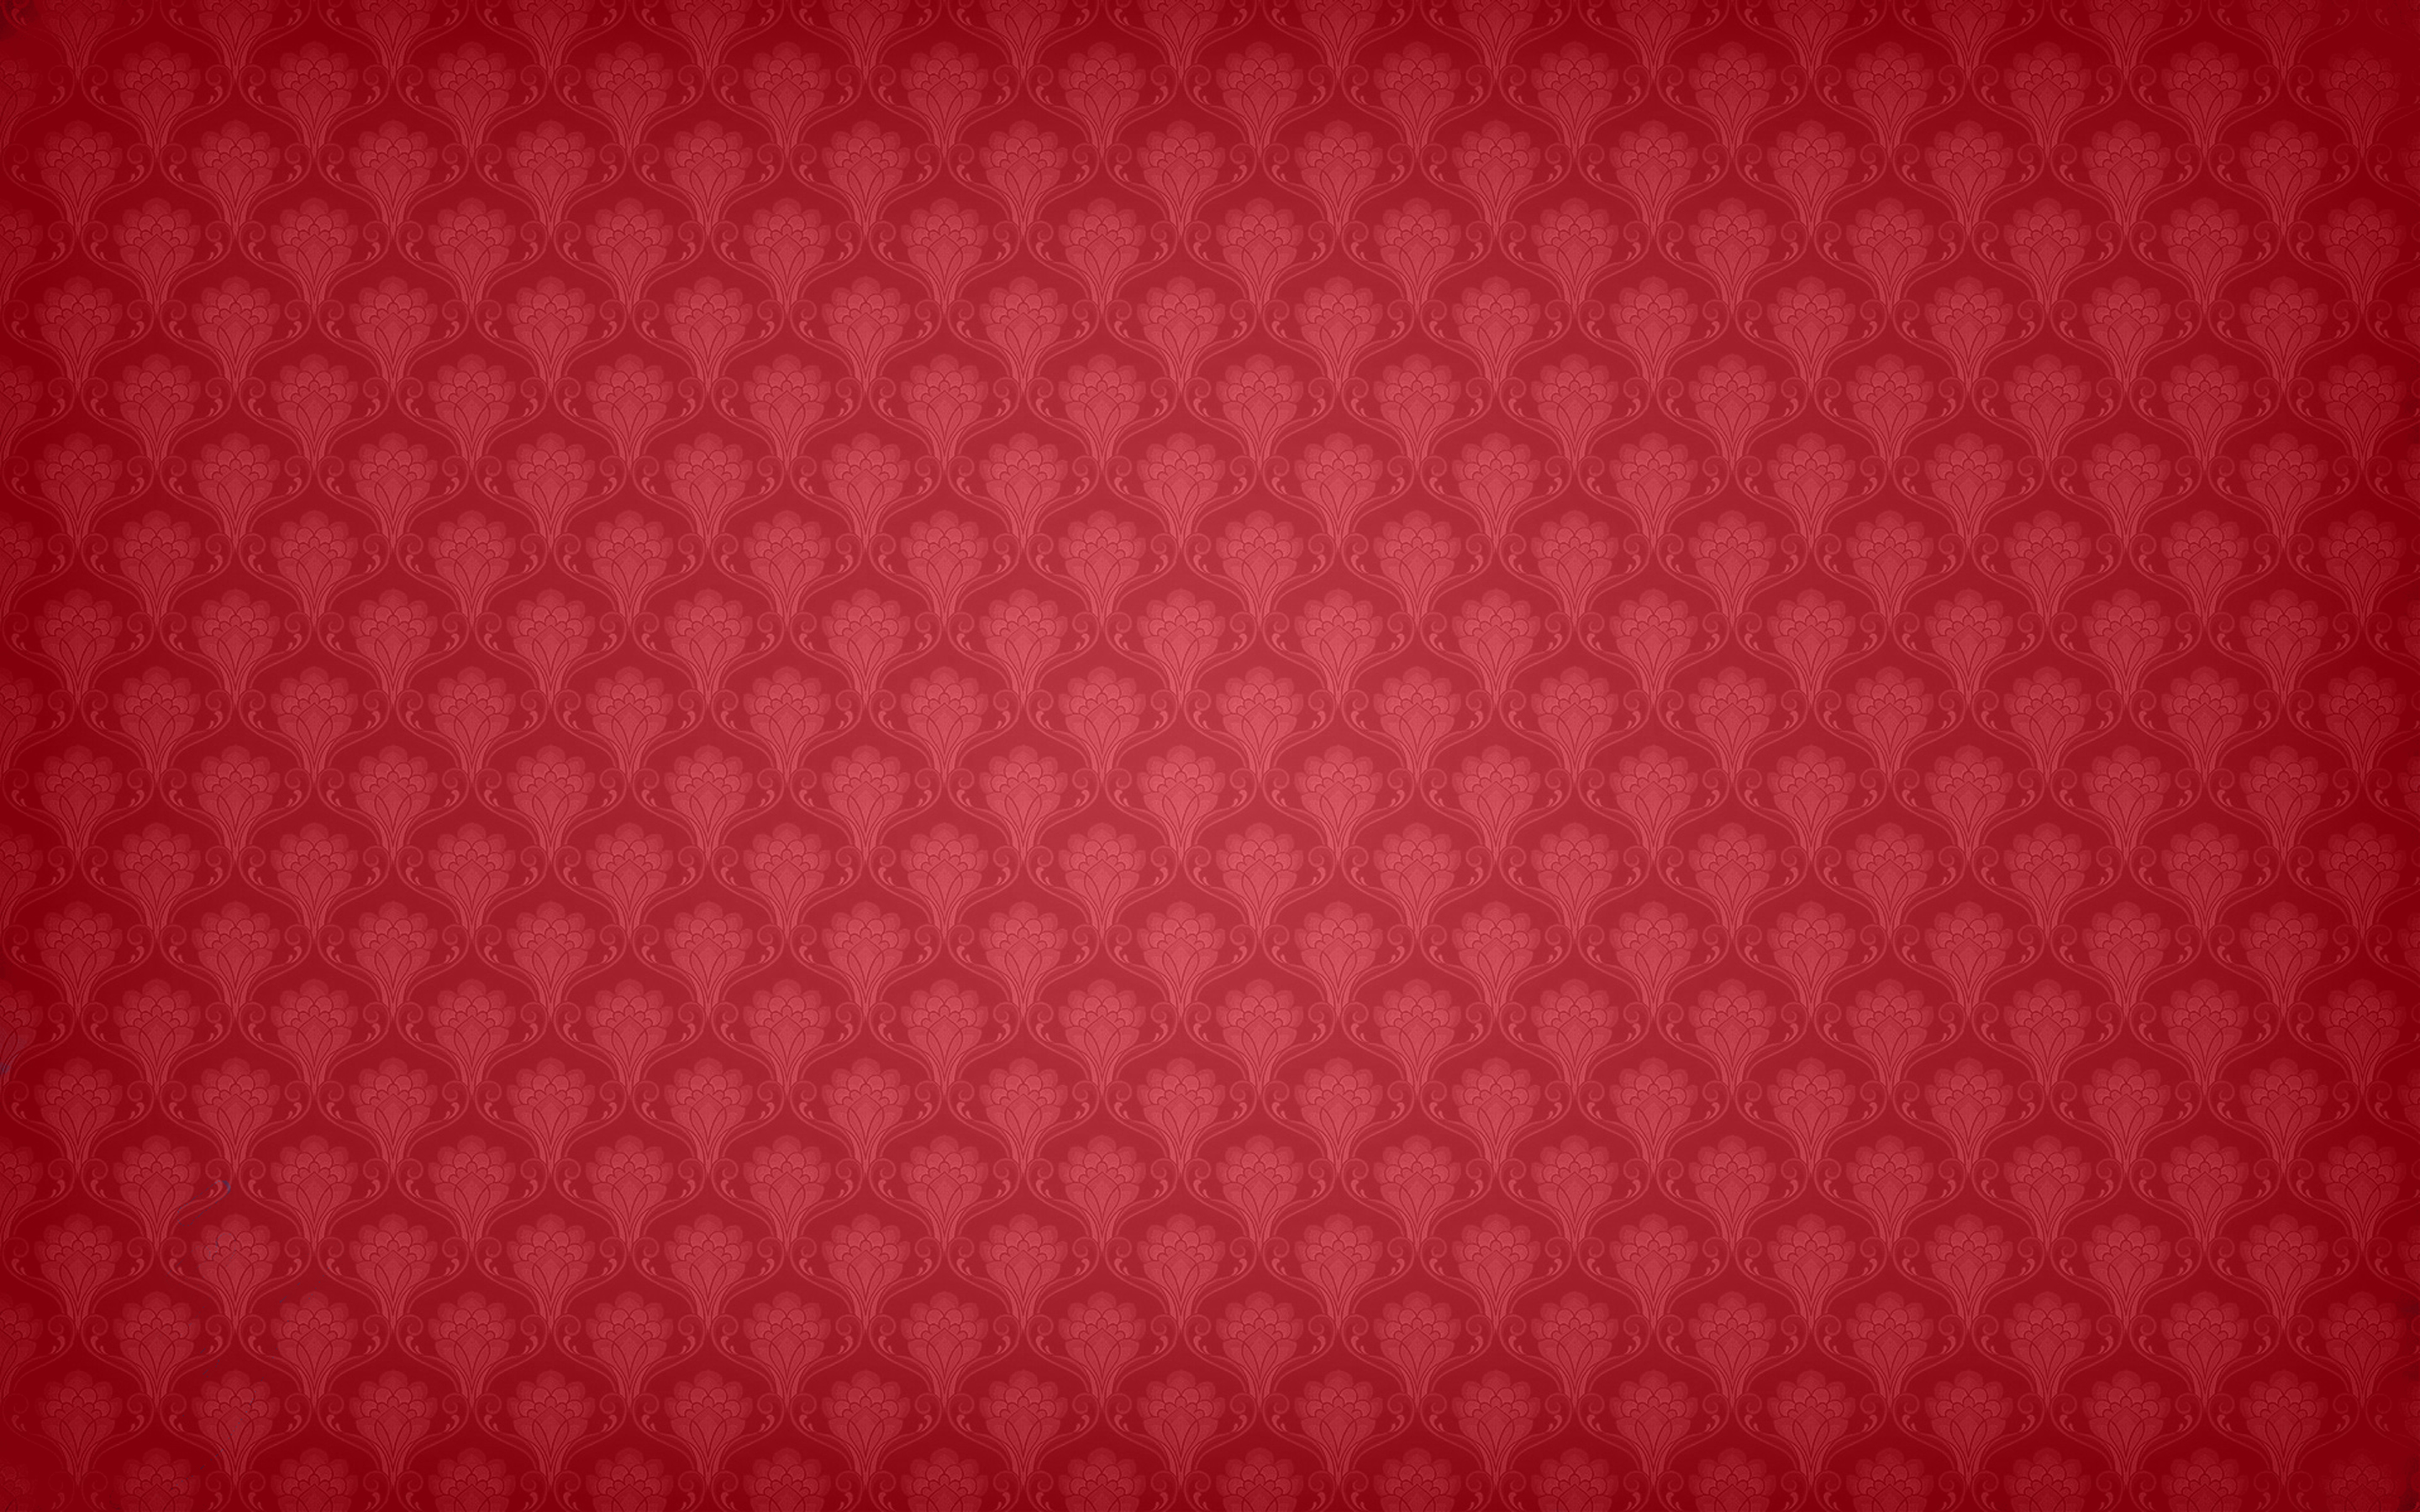 ... template-widescreen-background-pattern-html1.jpg.